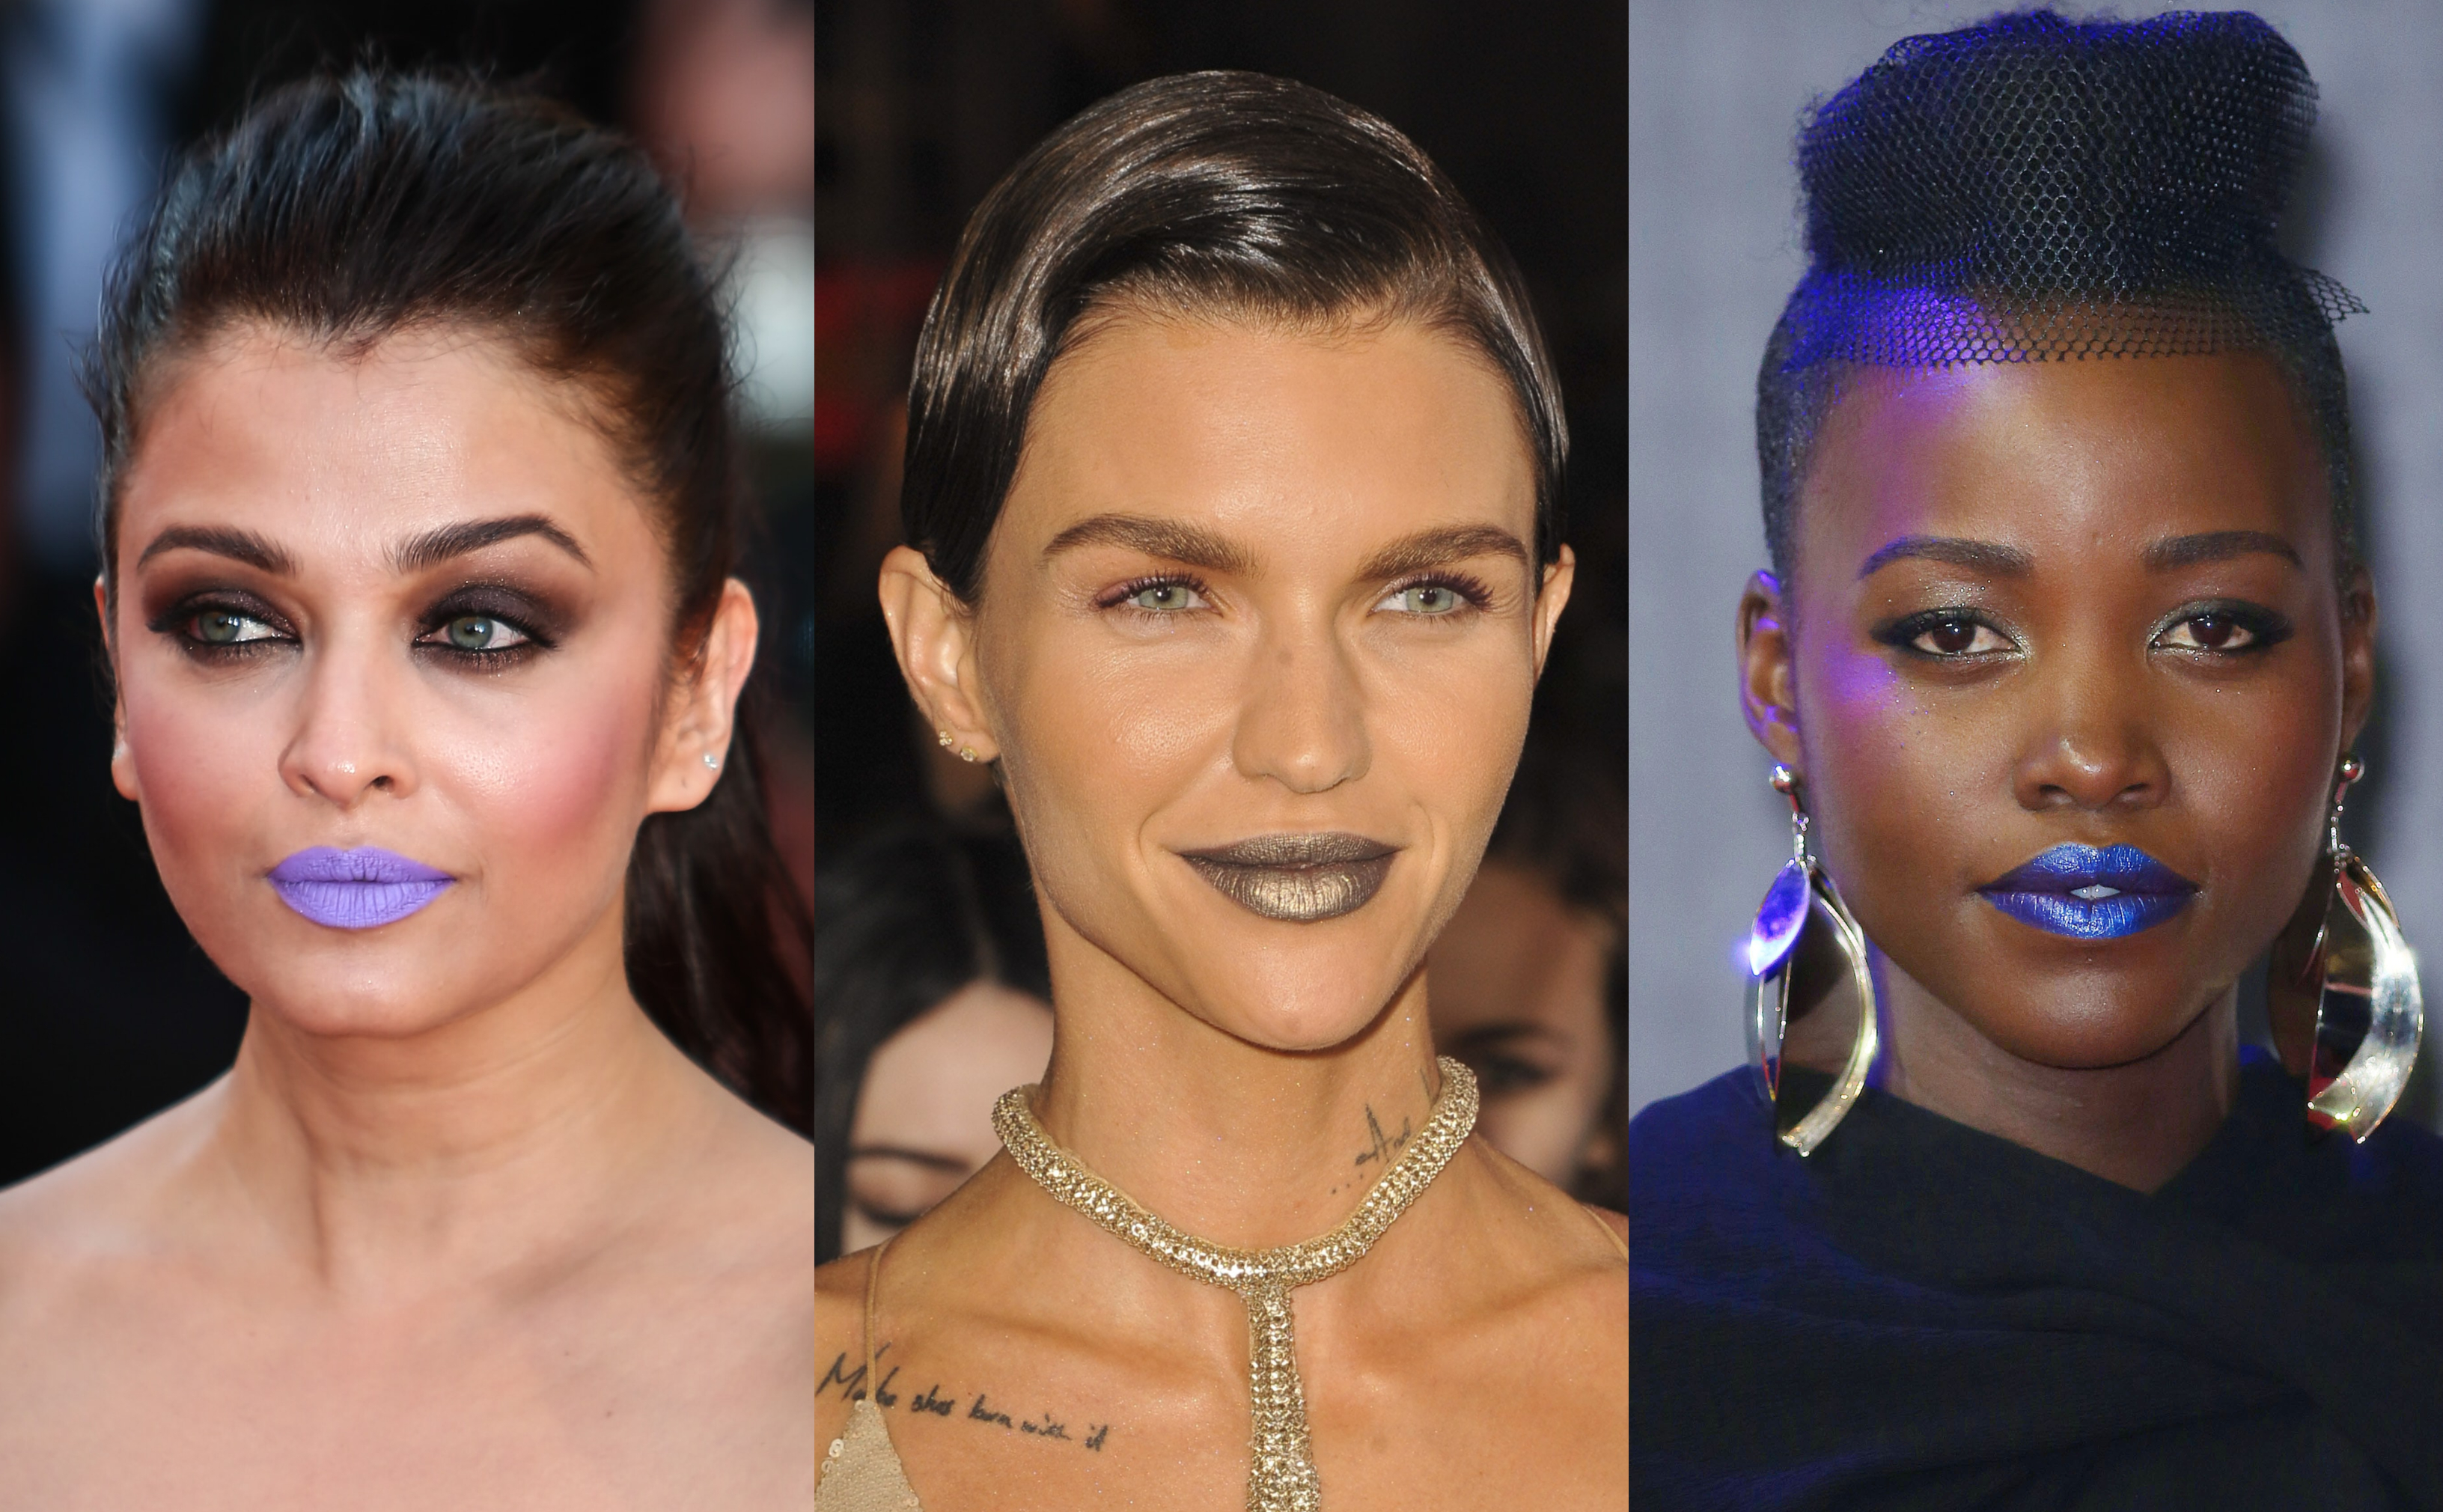 What better way to celebrate National Lipstick Day than reliving the craziest lipstick moments on the red carpet! (Photo: WENN)